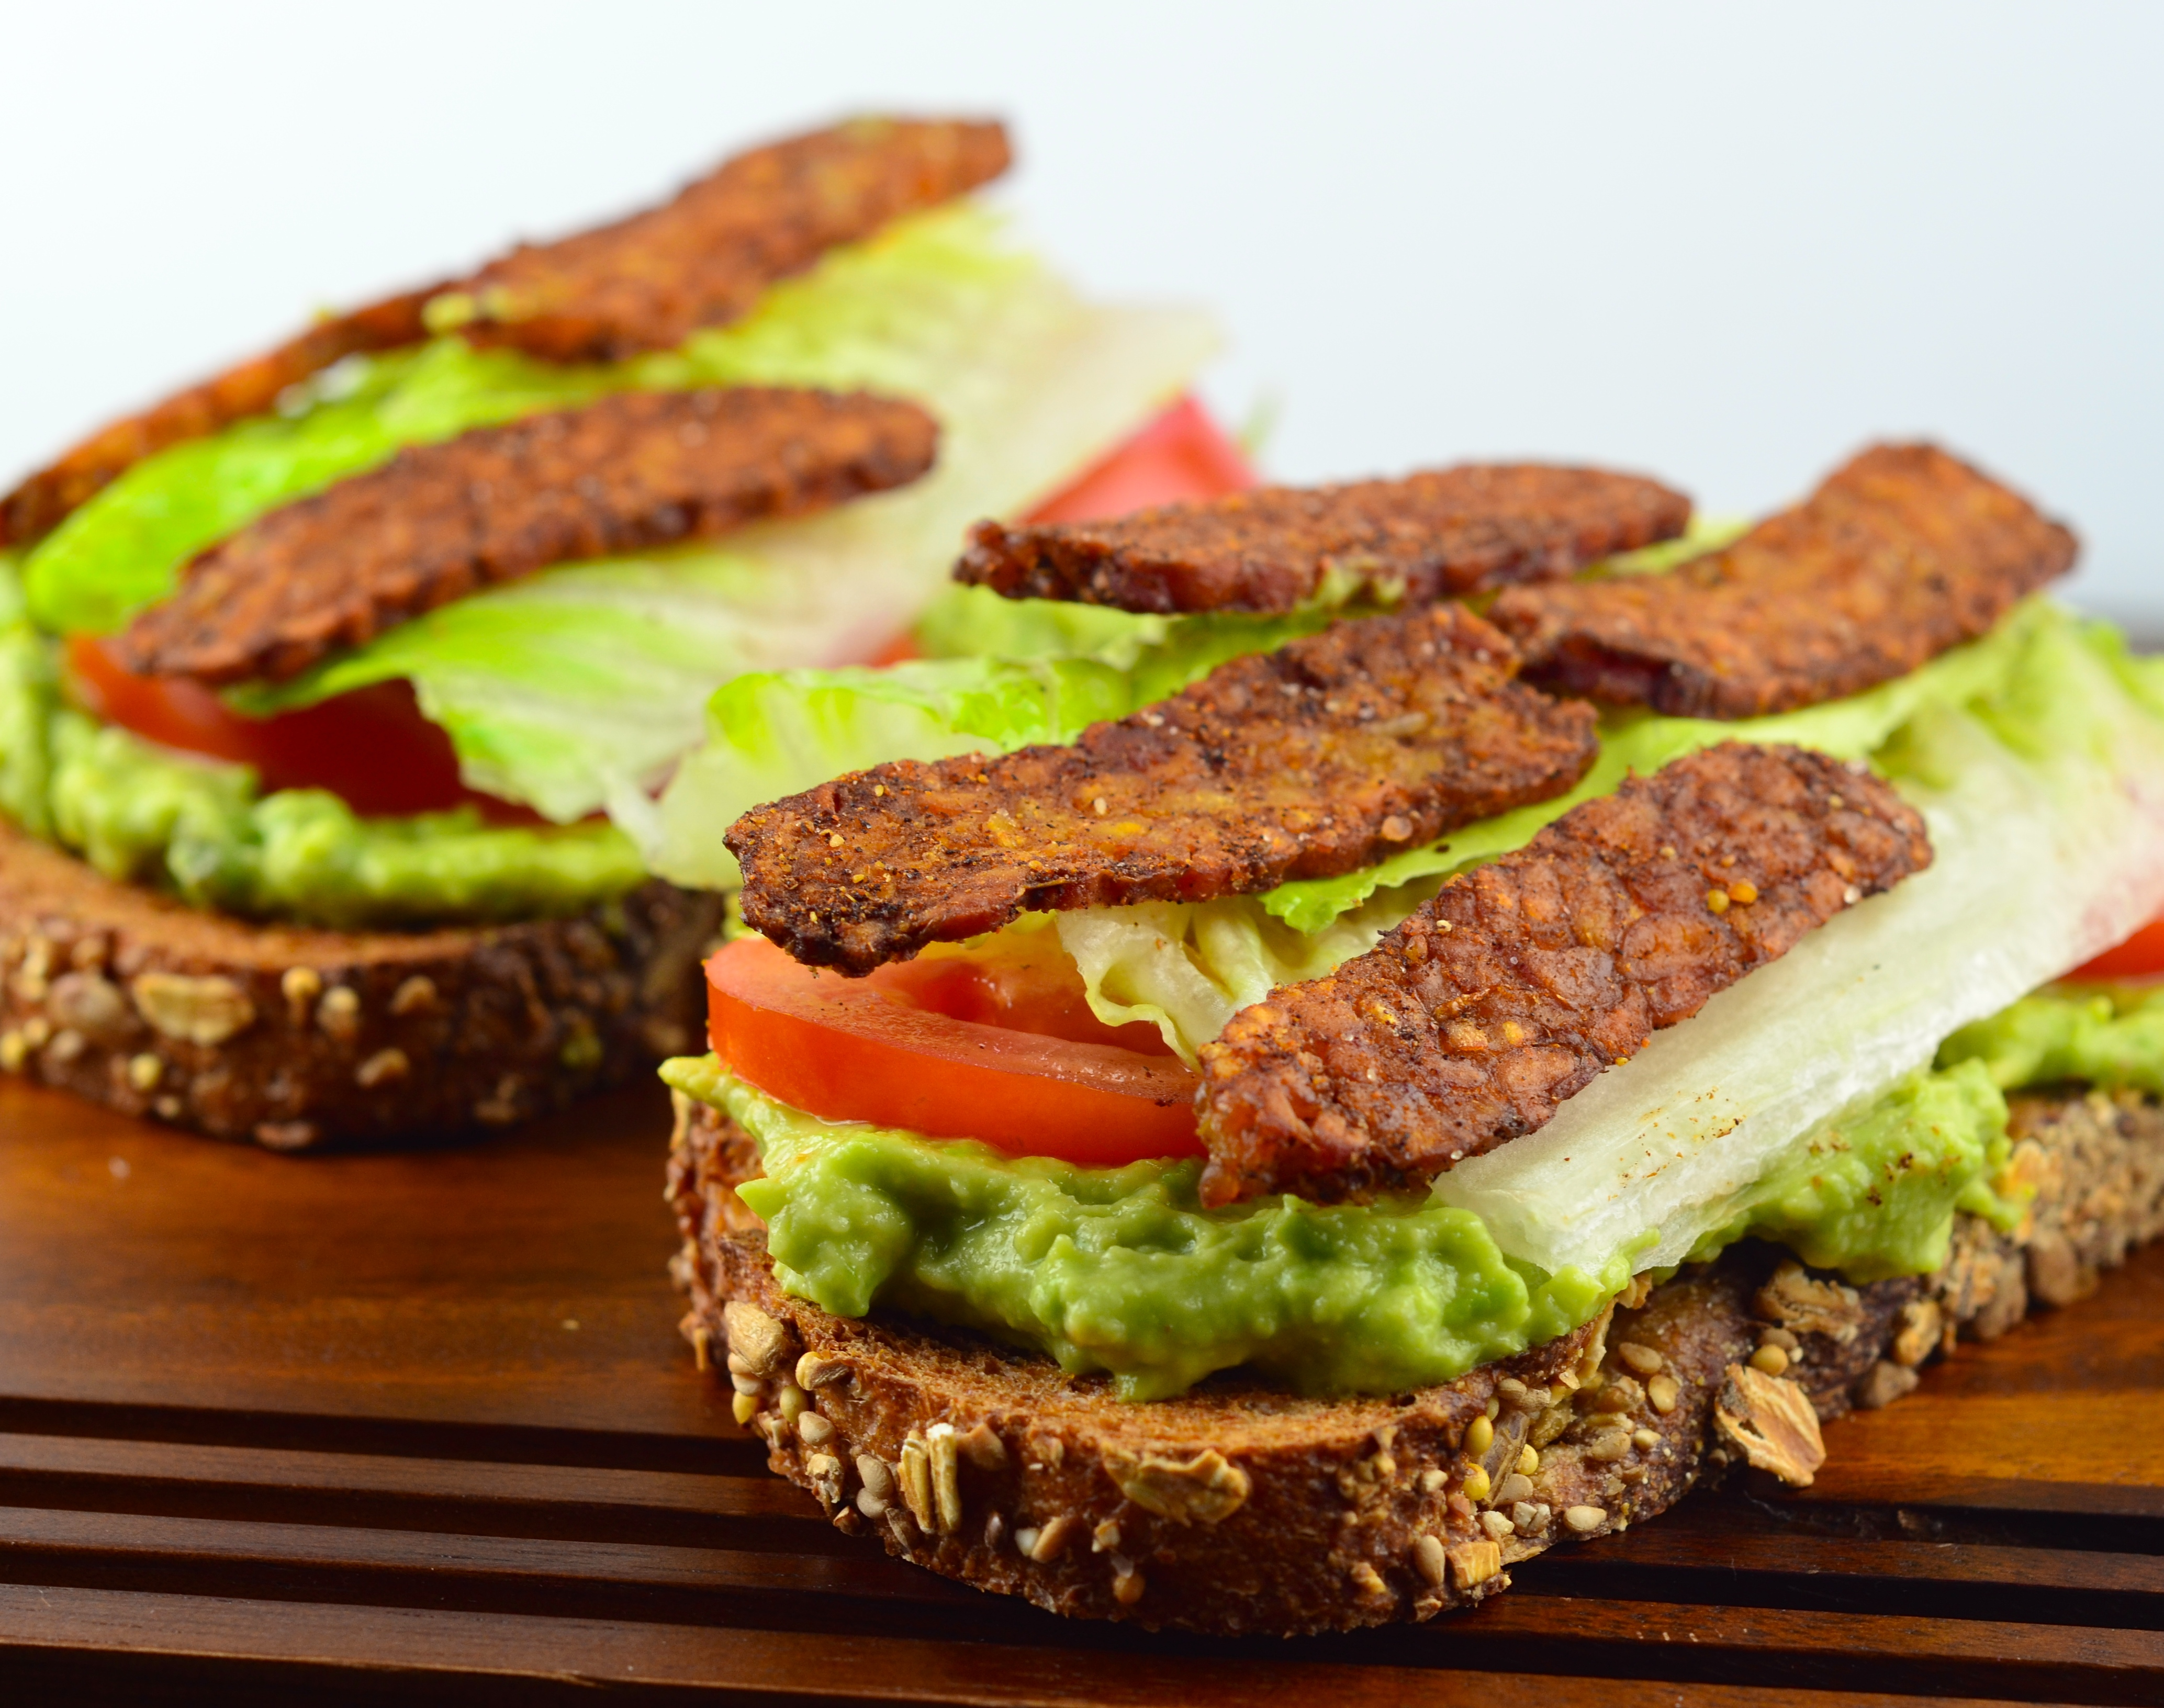 Vegan Avocado BLT - #sandwich #BLT #Vegan #kosher #avocado #tomato # ...